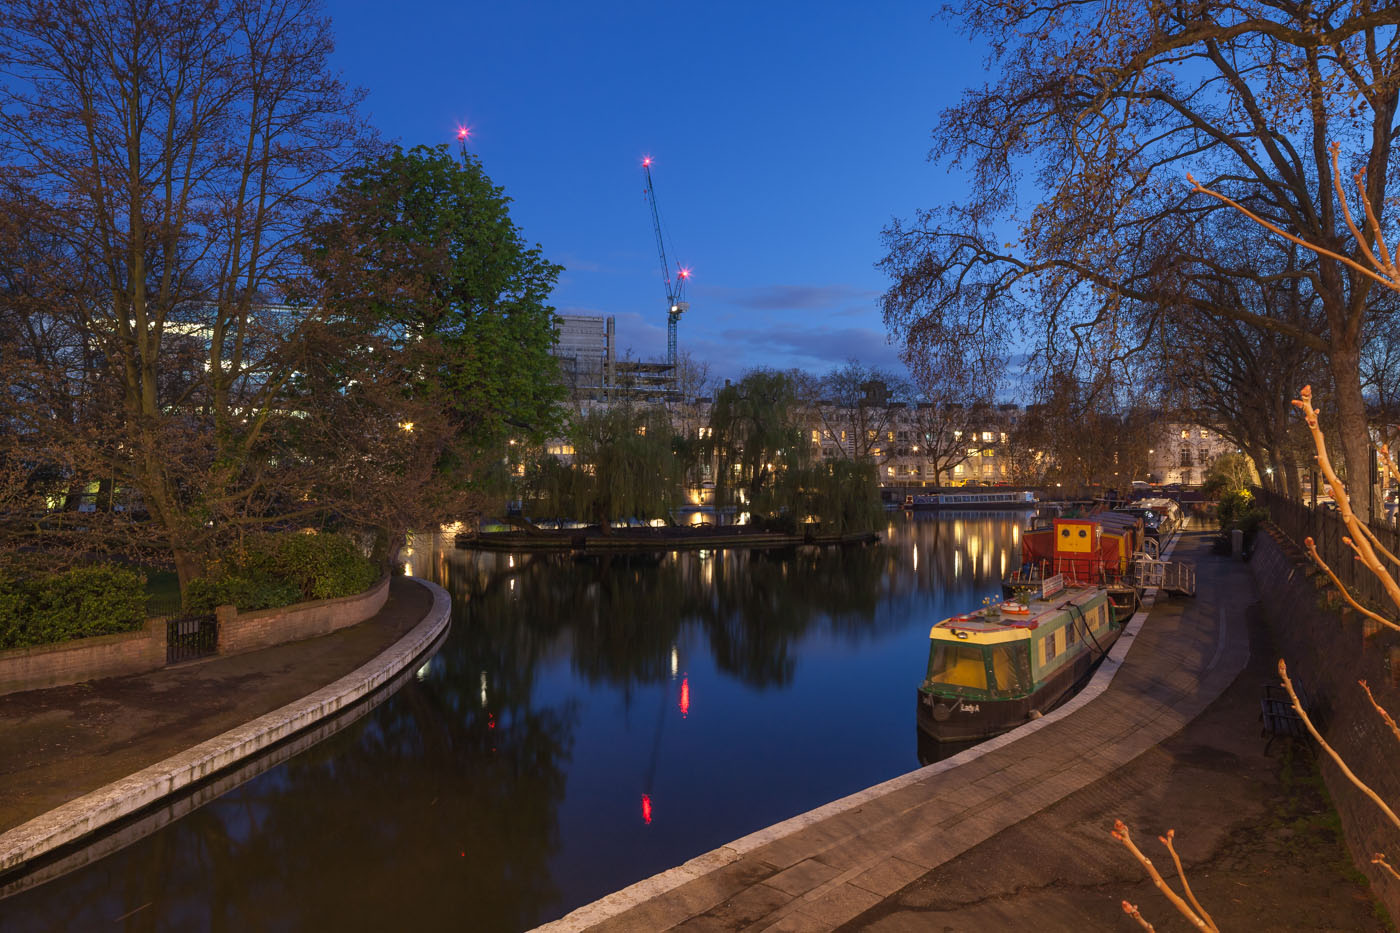 Little Venice north of Paddington